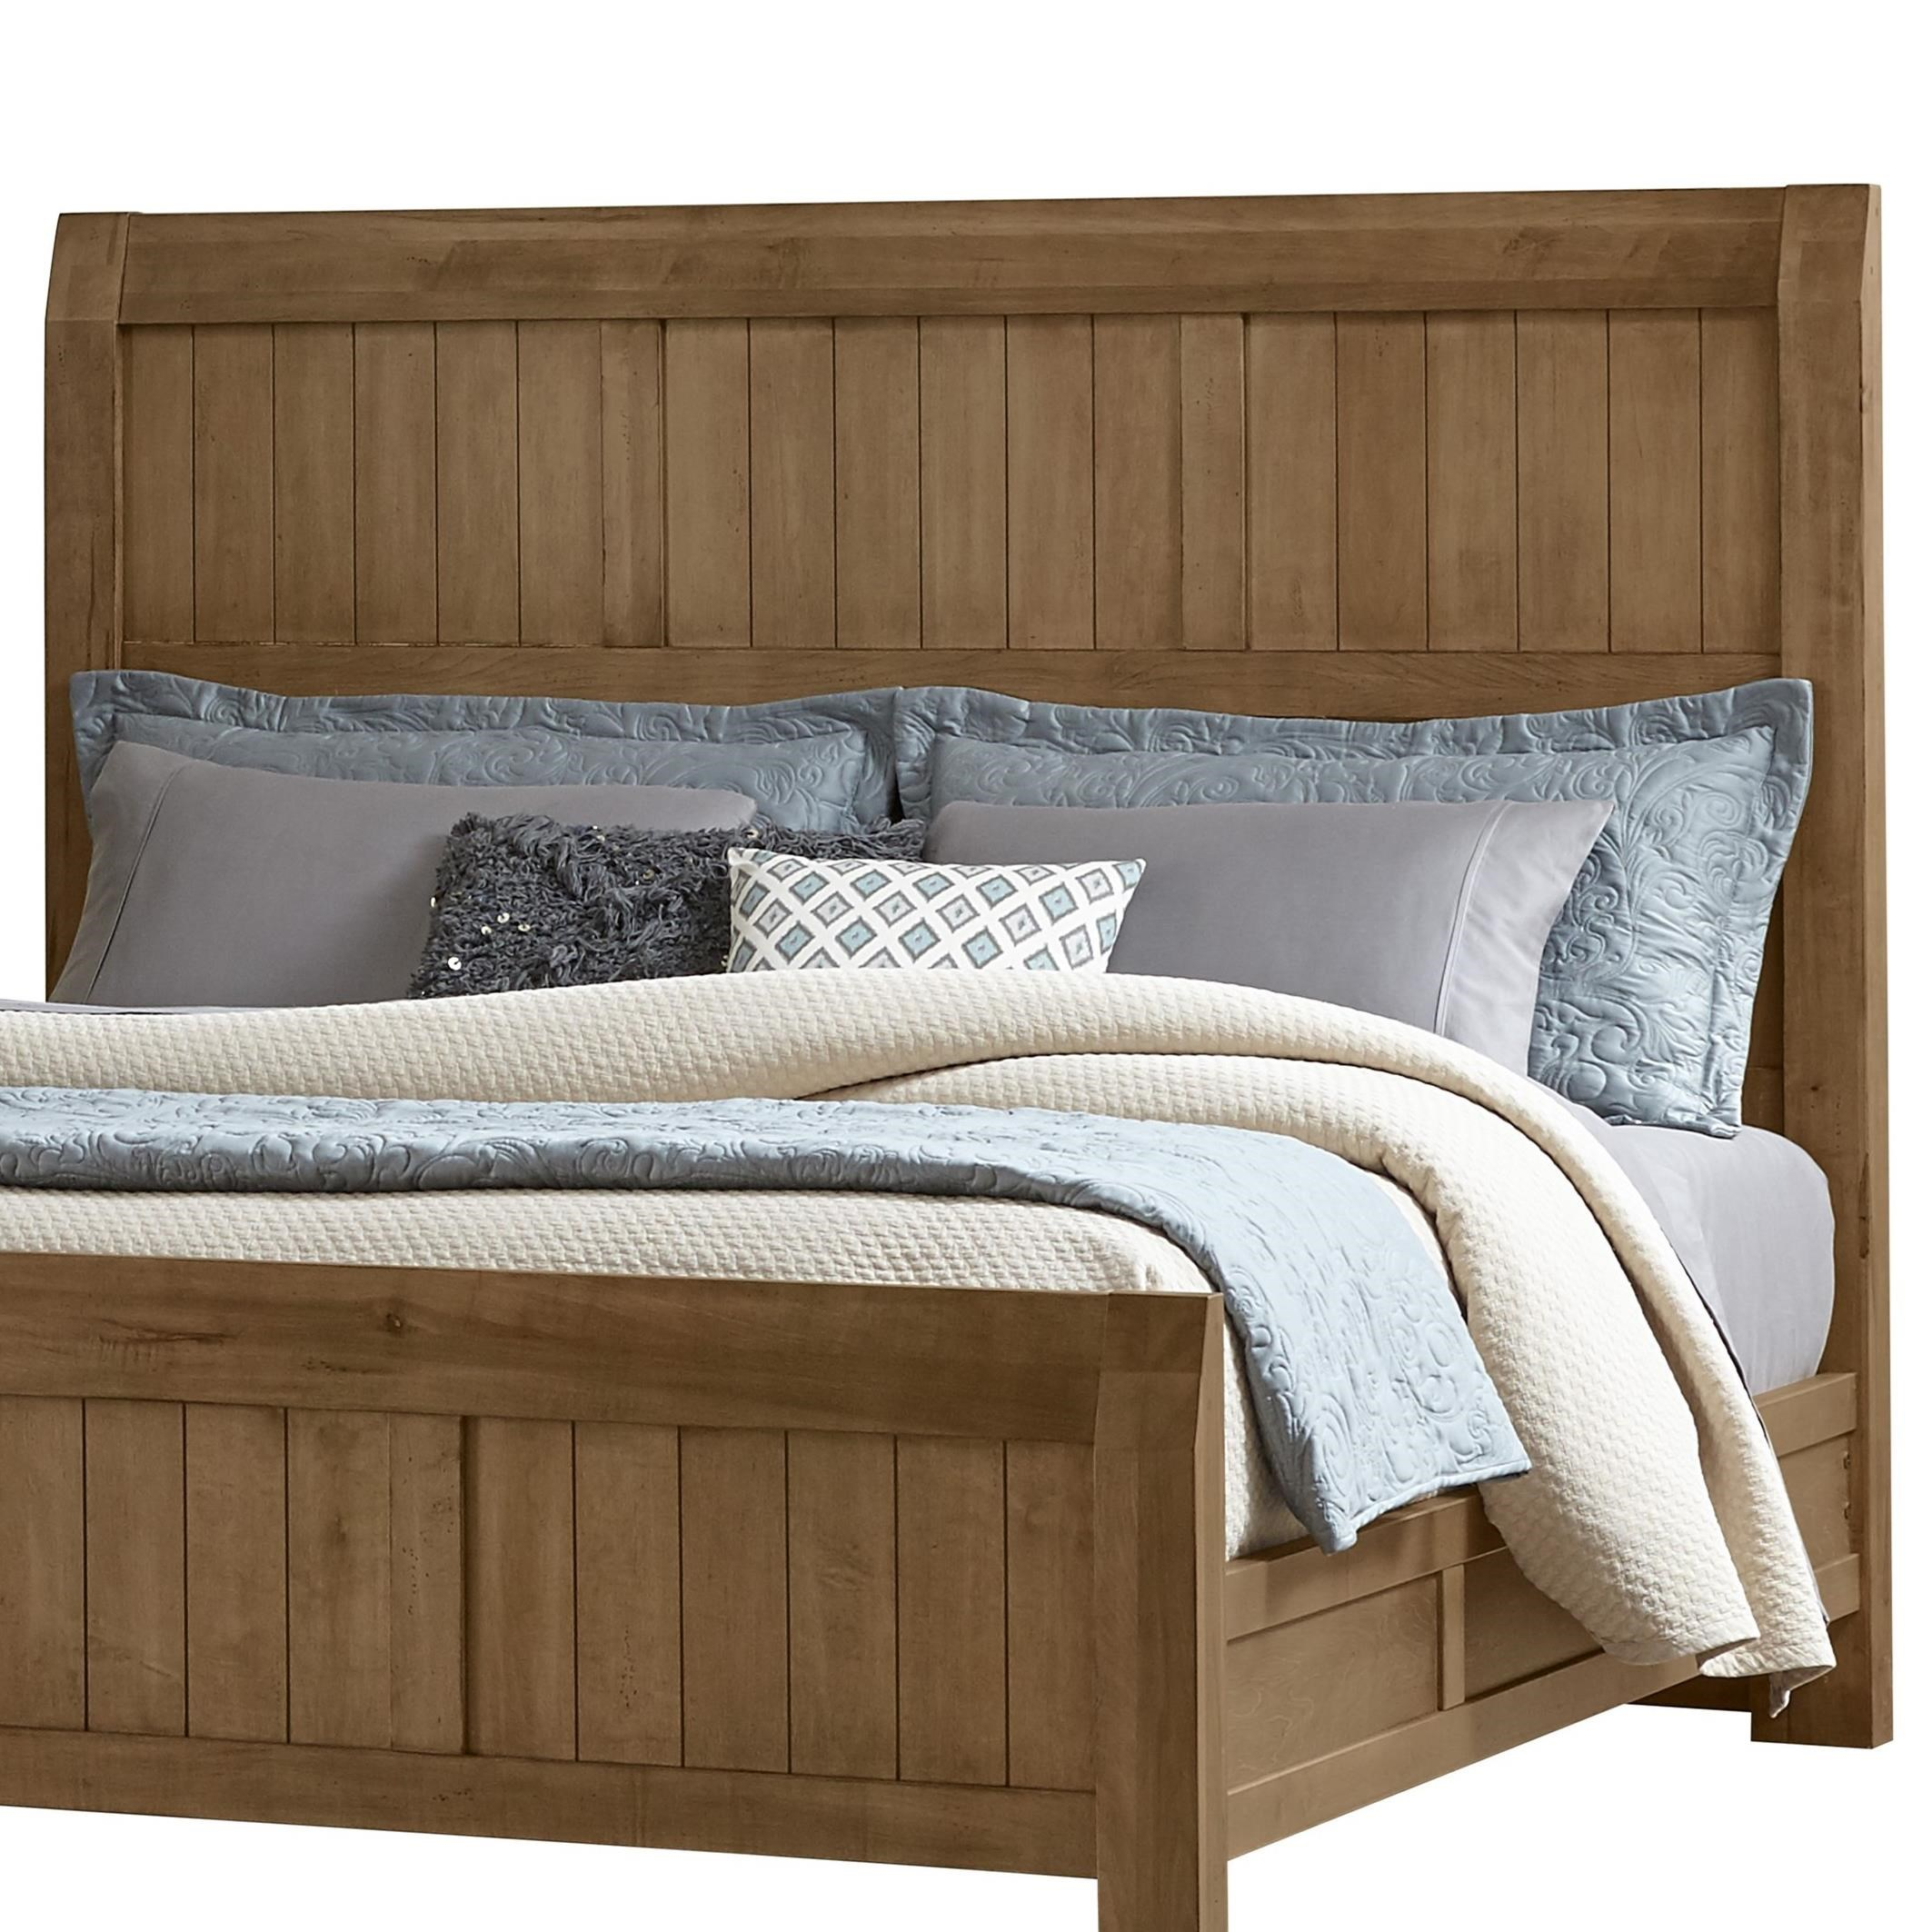 Vaughan Bassett Timber Creek Queen Timber Headboard